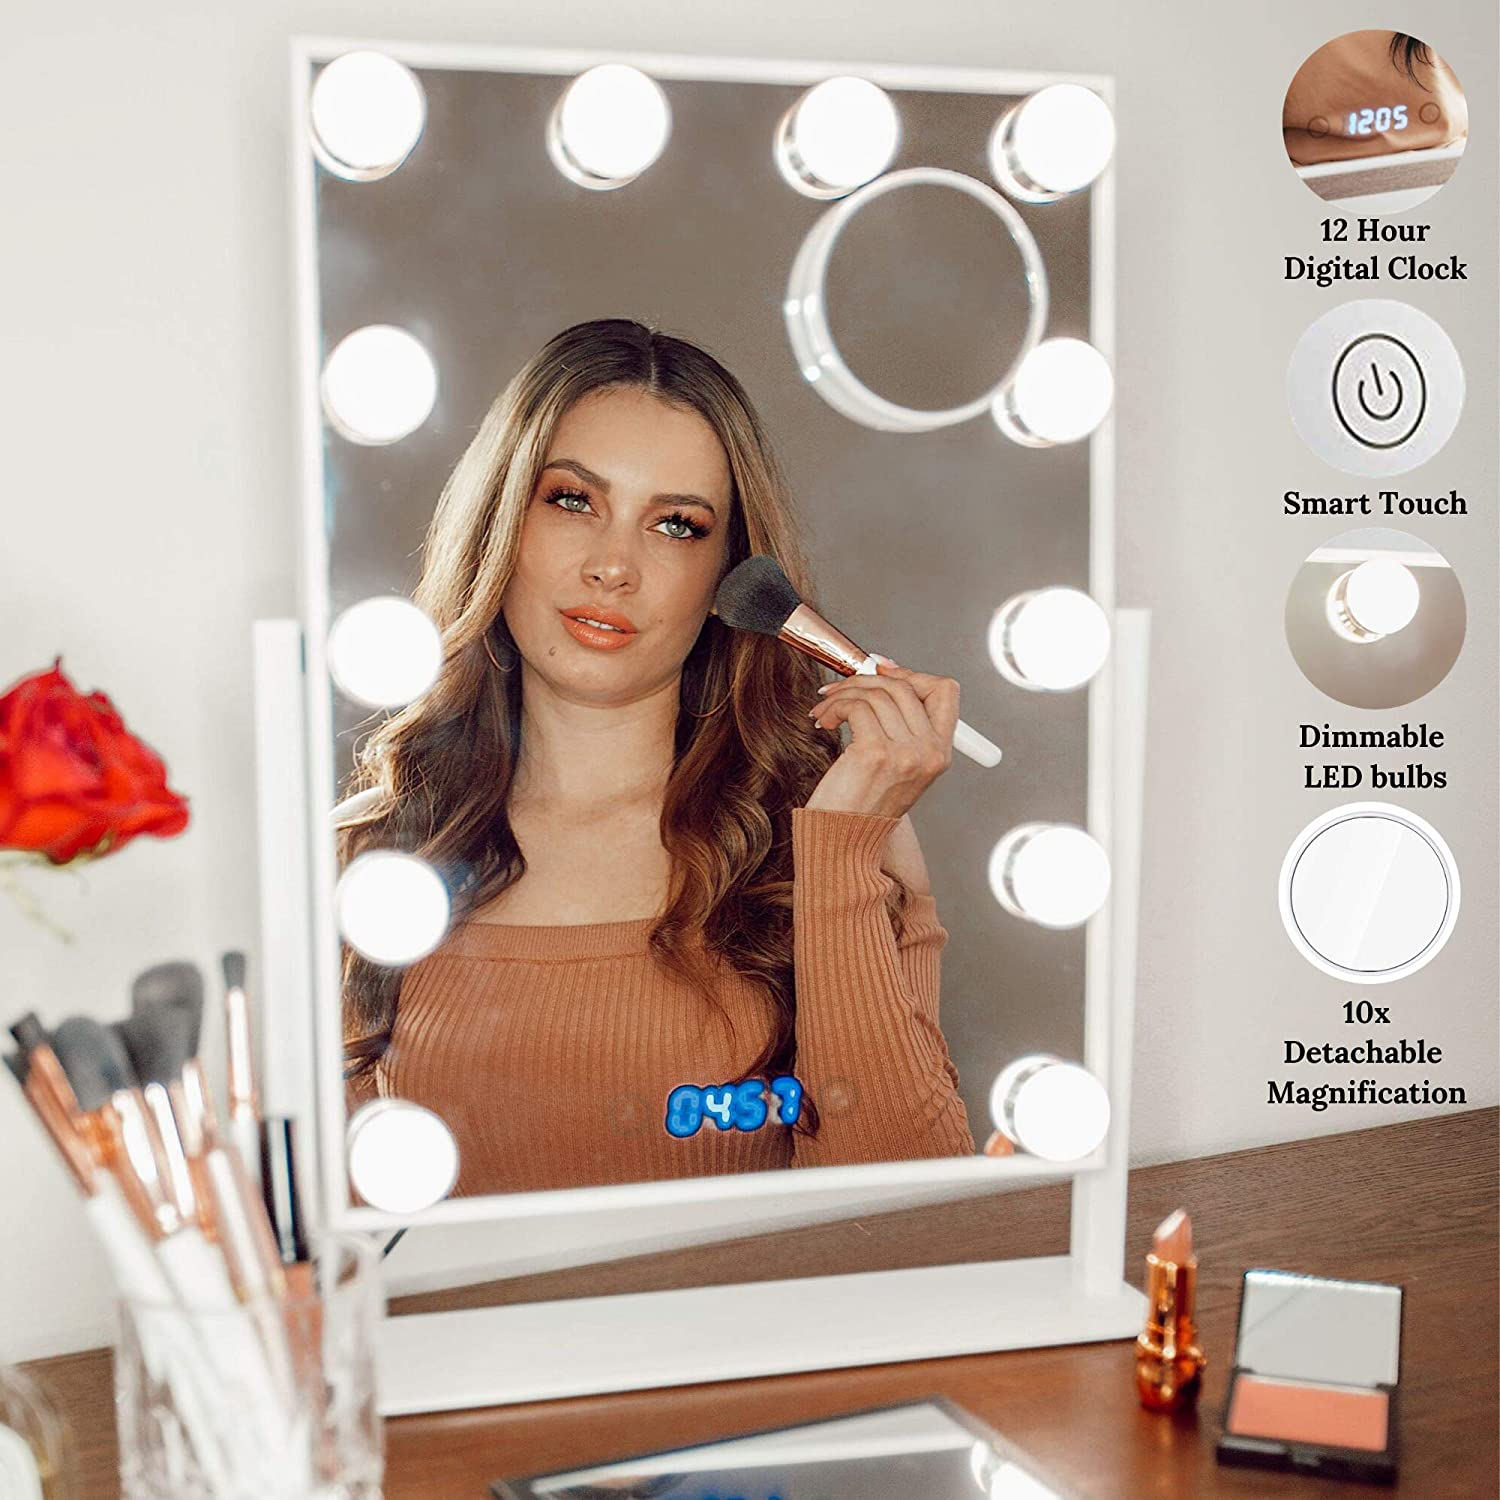 Estala Makeup Vanity Mirror with Lights - Hollywood Vanity Mirror & Lighted Makeup Table Set with Smart Touch Dimmable & Adjustable LED Lights & Digital Clock - Free eBook (White)